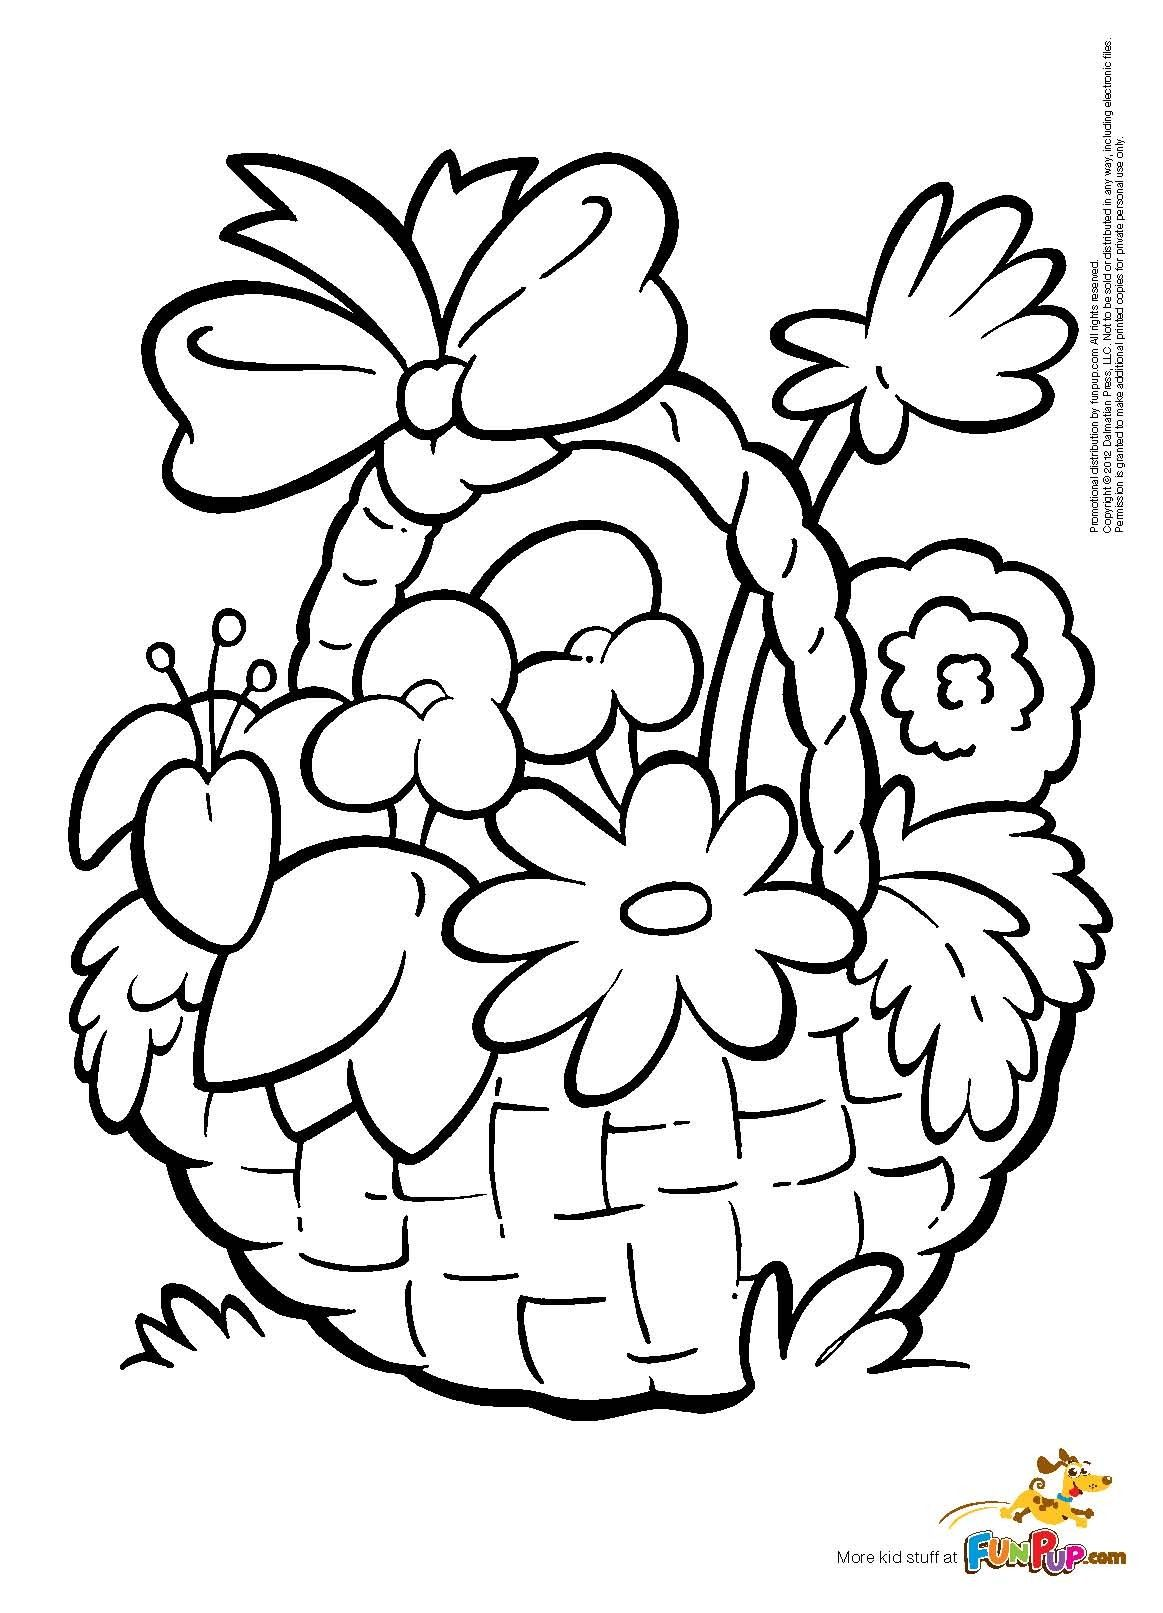 Flower Basket Coloring Page Flower Coloring Pages Printable